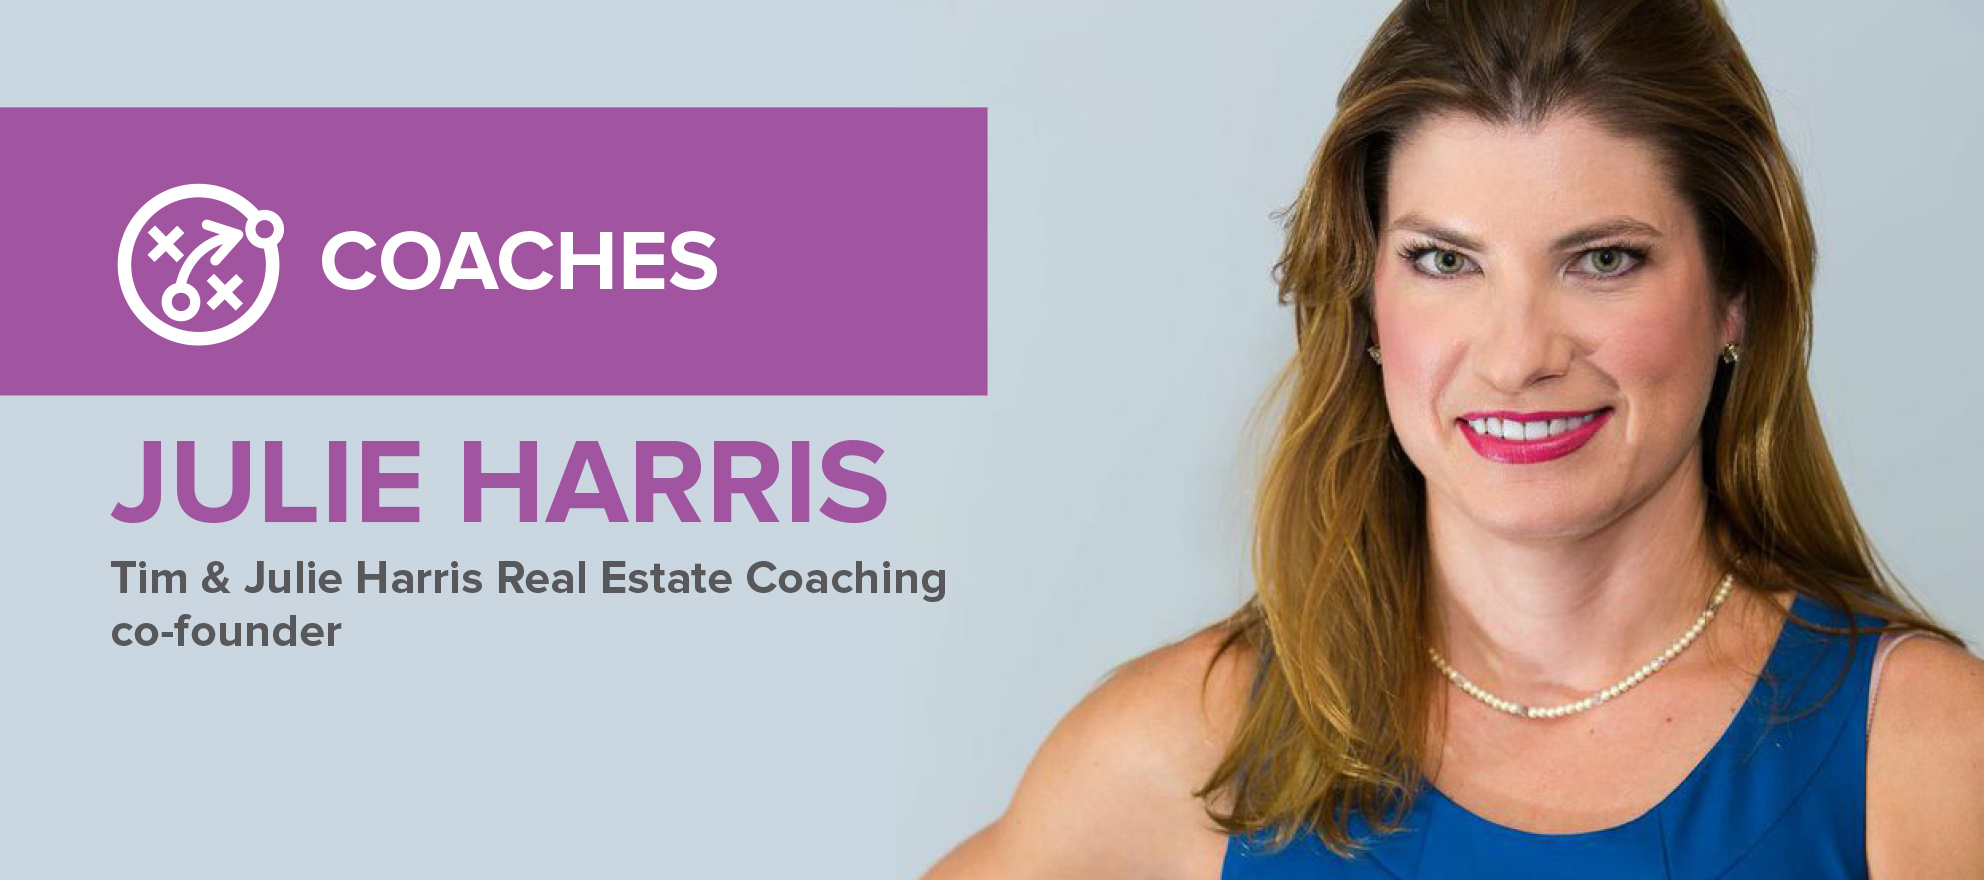 Julie Harris: 'My goal is to provide overwhelming value to my agents'